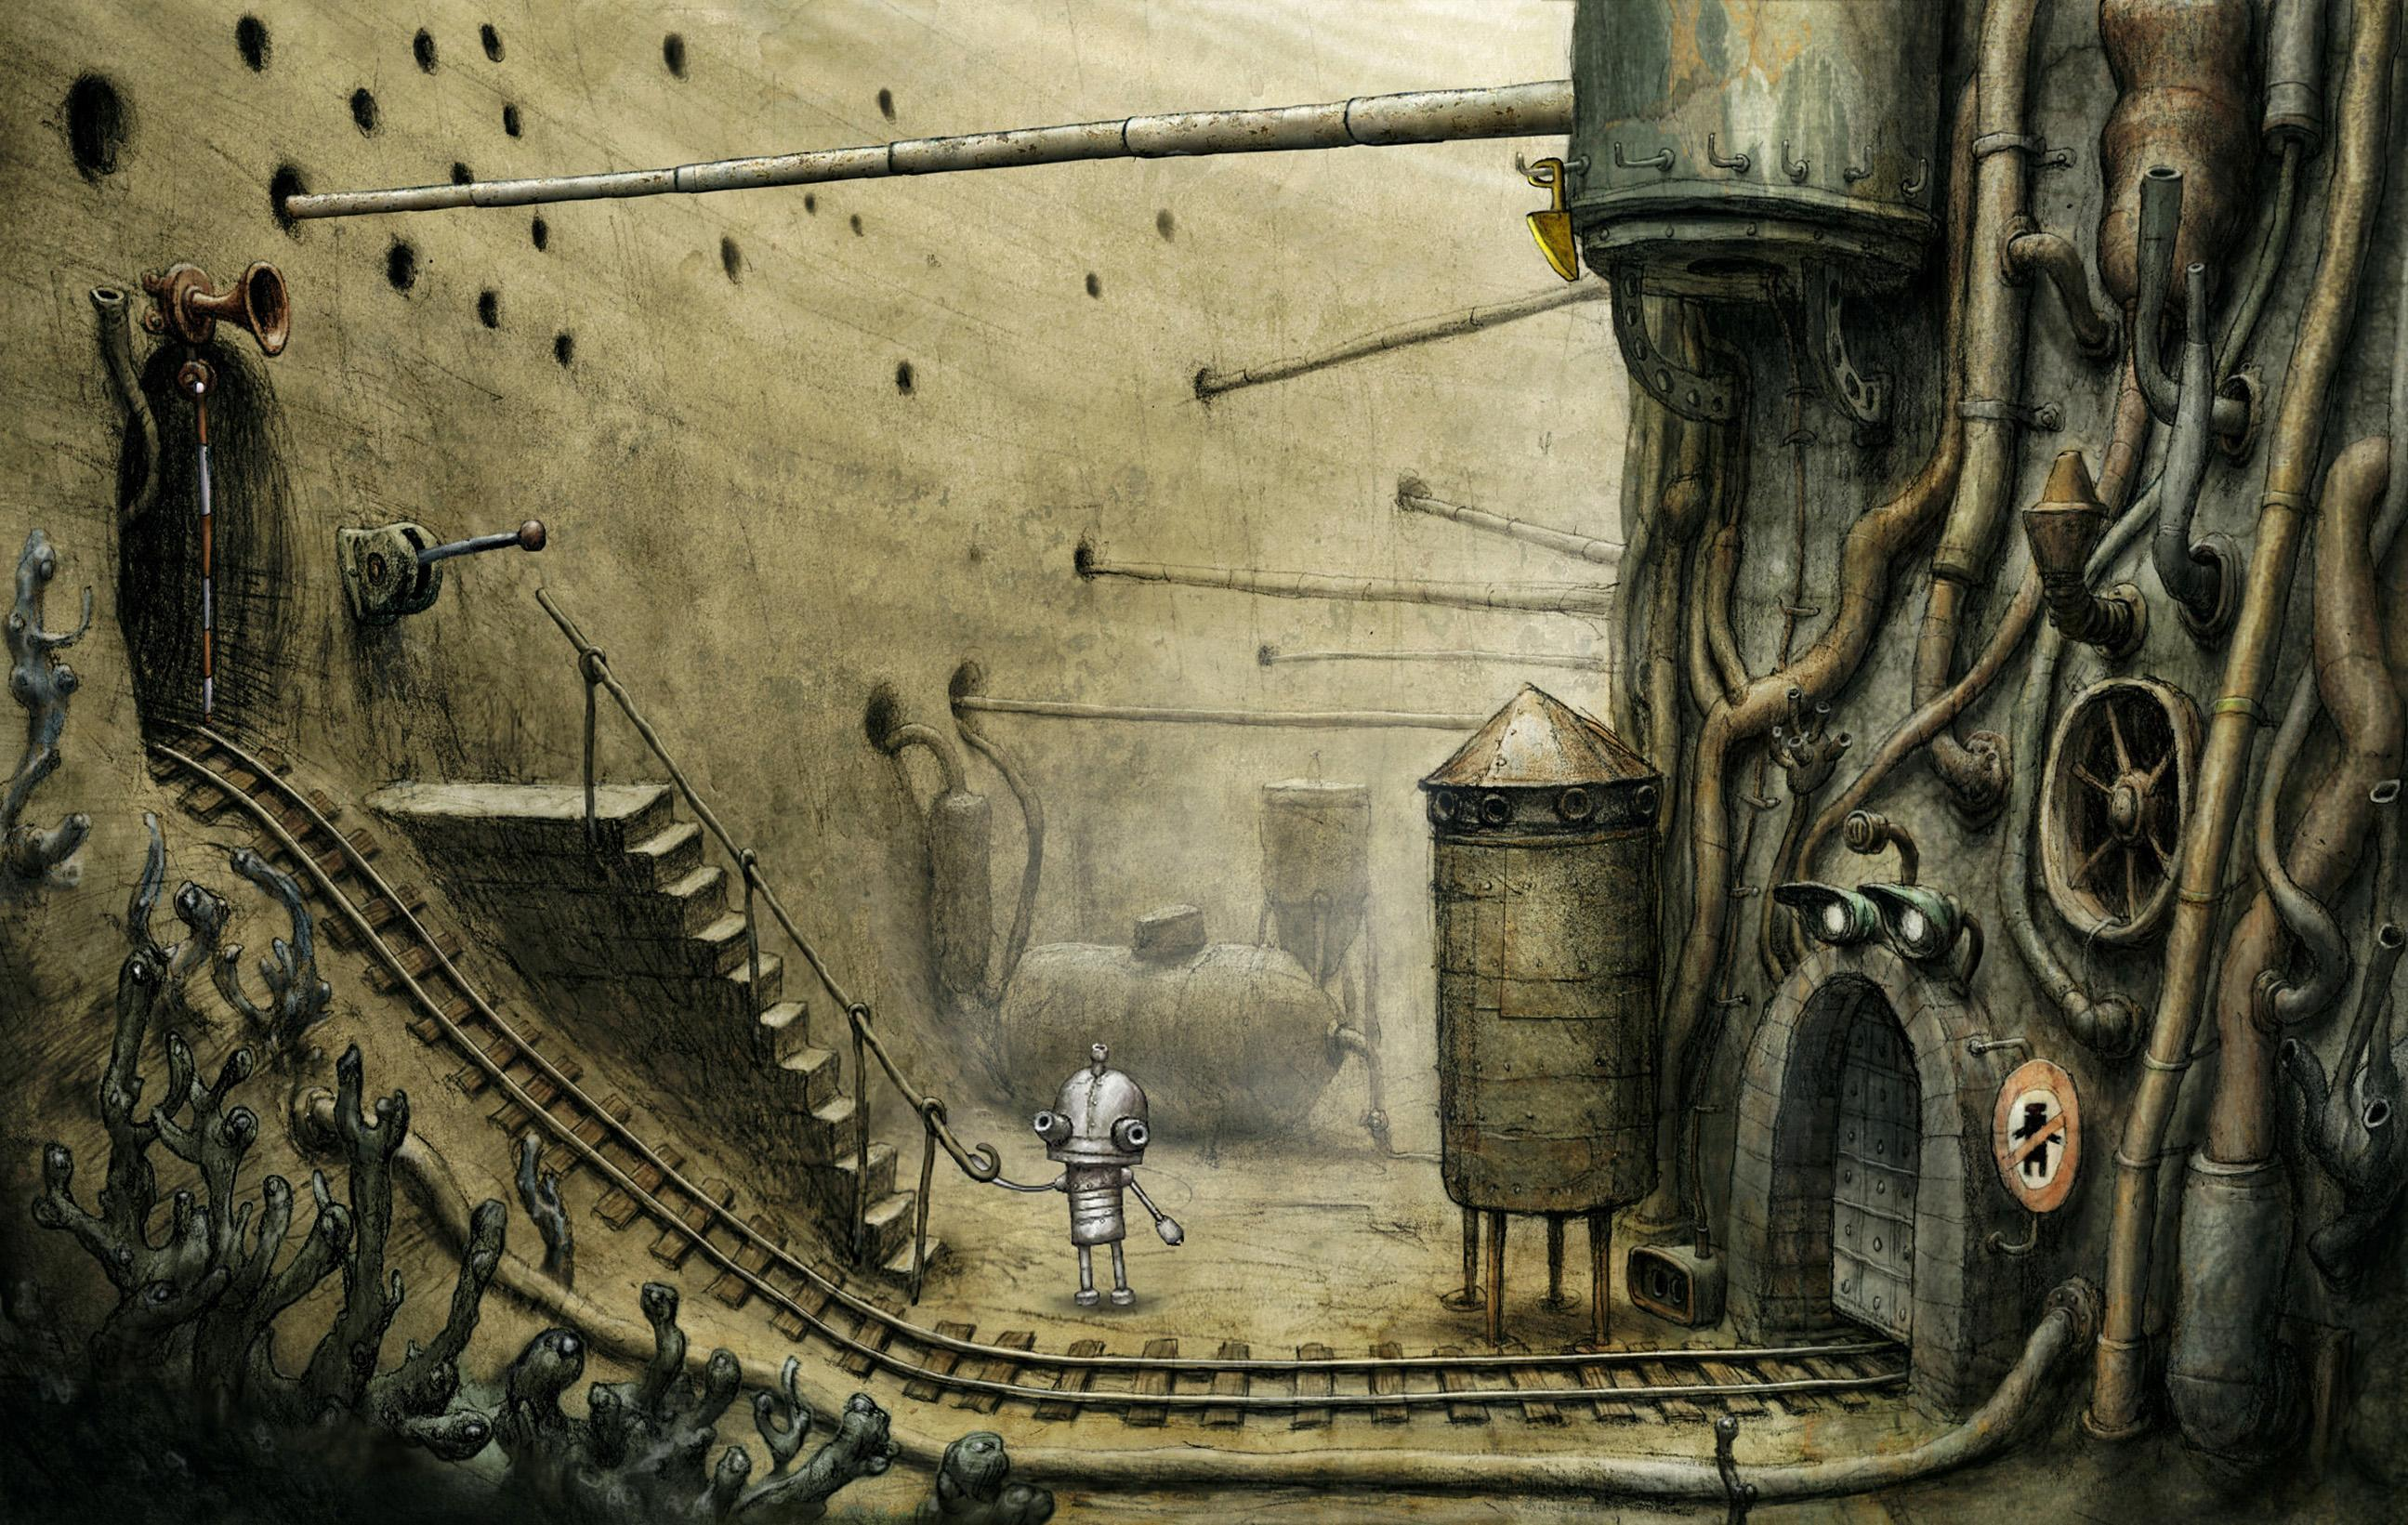 Machinarium Demo 2.6.9 Screenshot 3